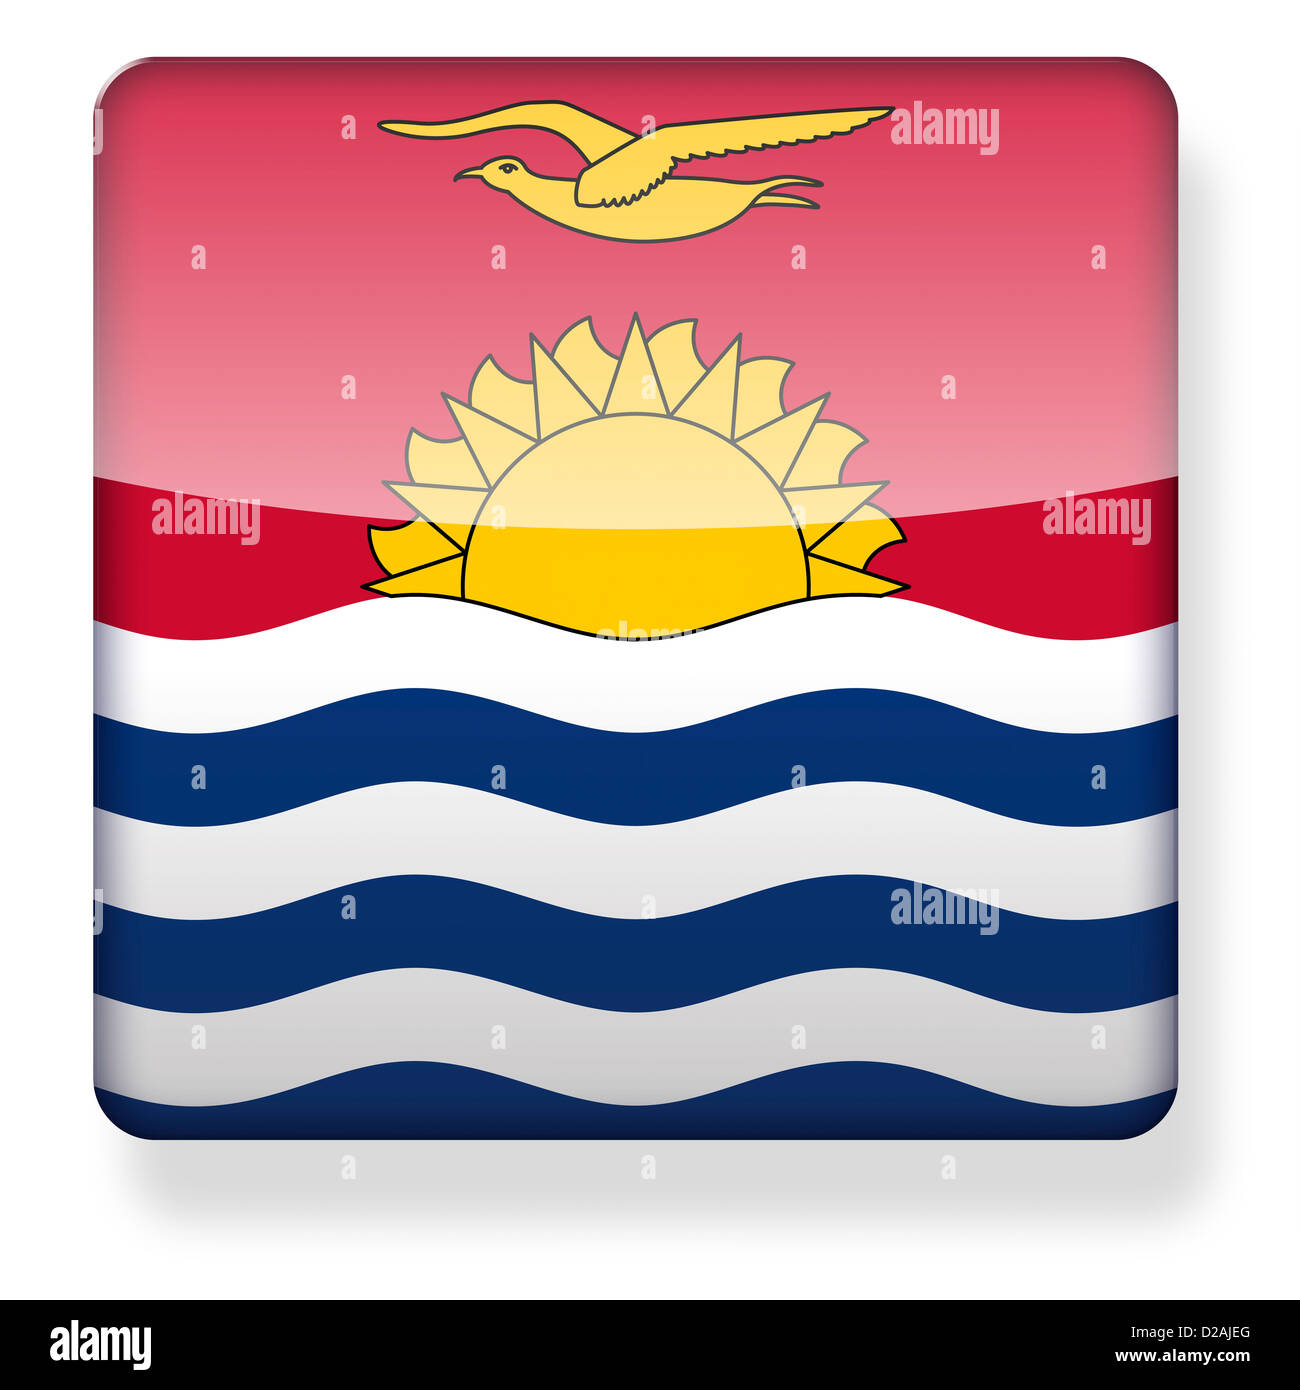 Kiribati flag as an app icon. Clipping path included. - Stock Image